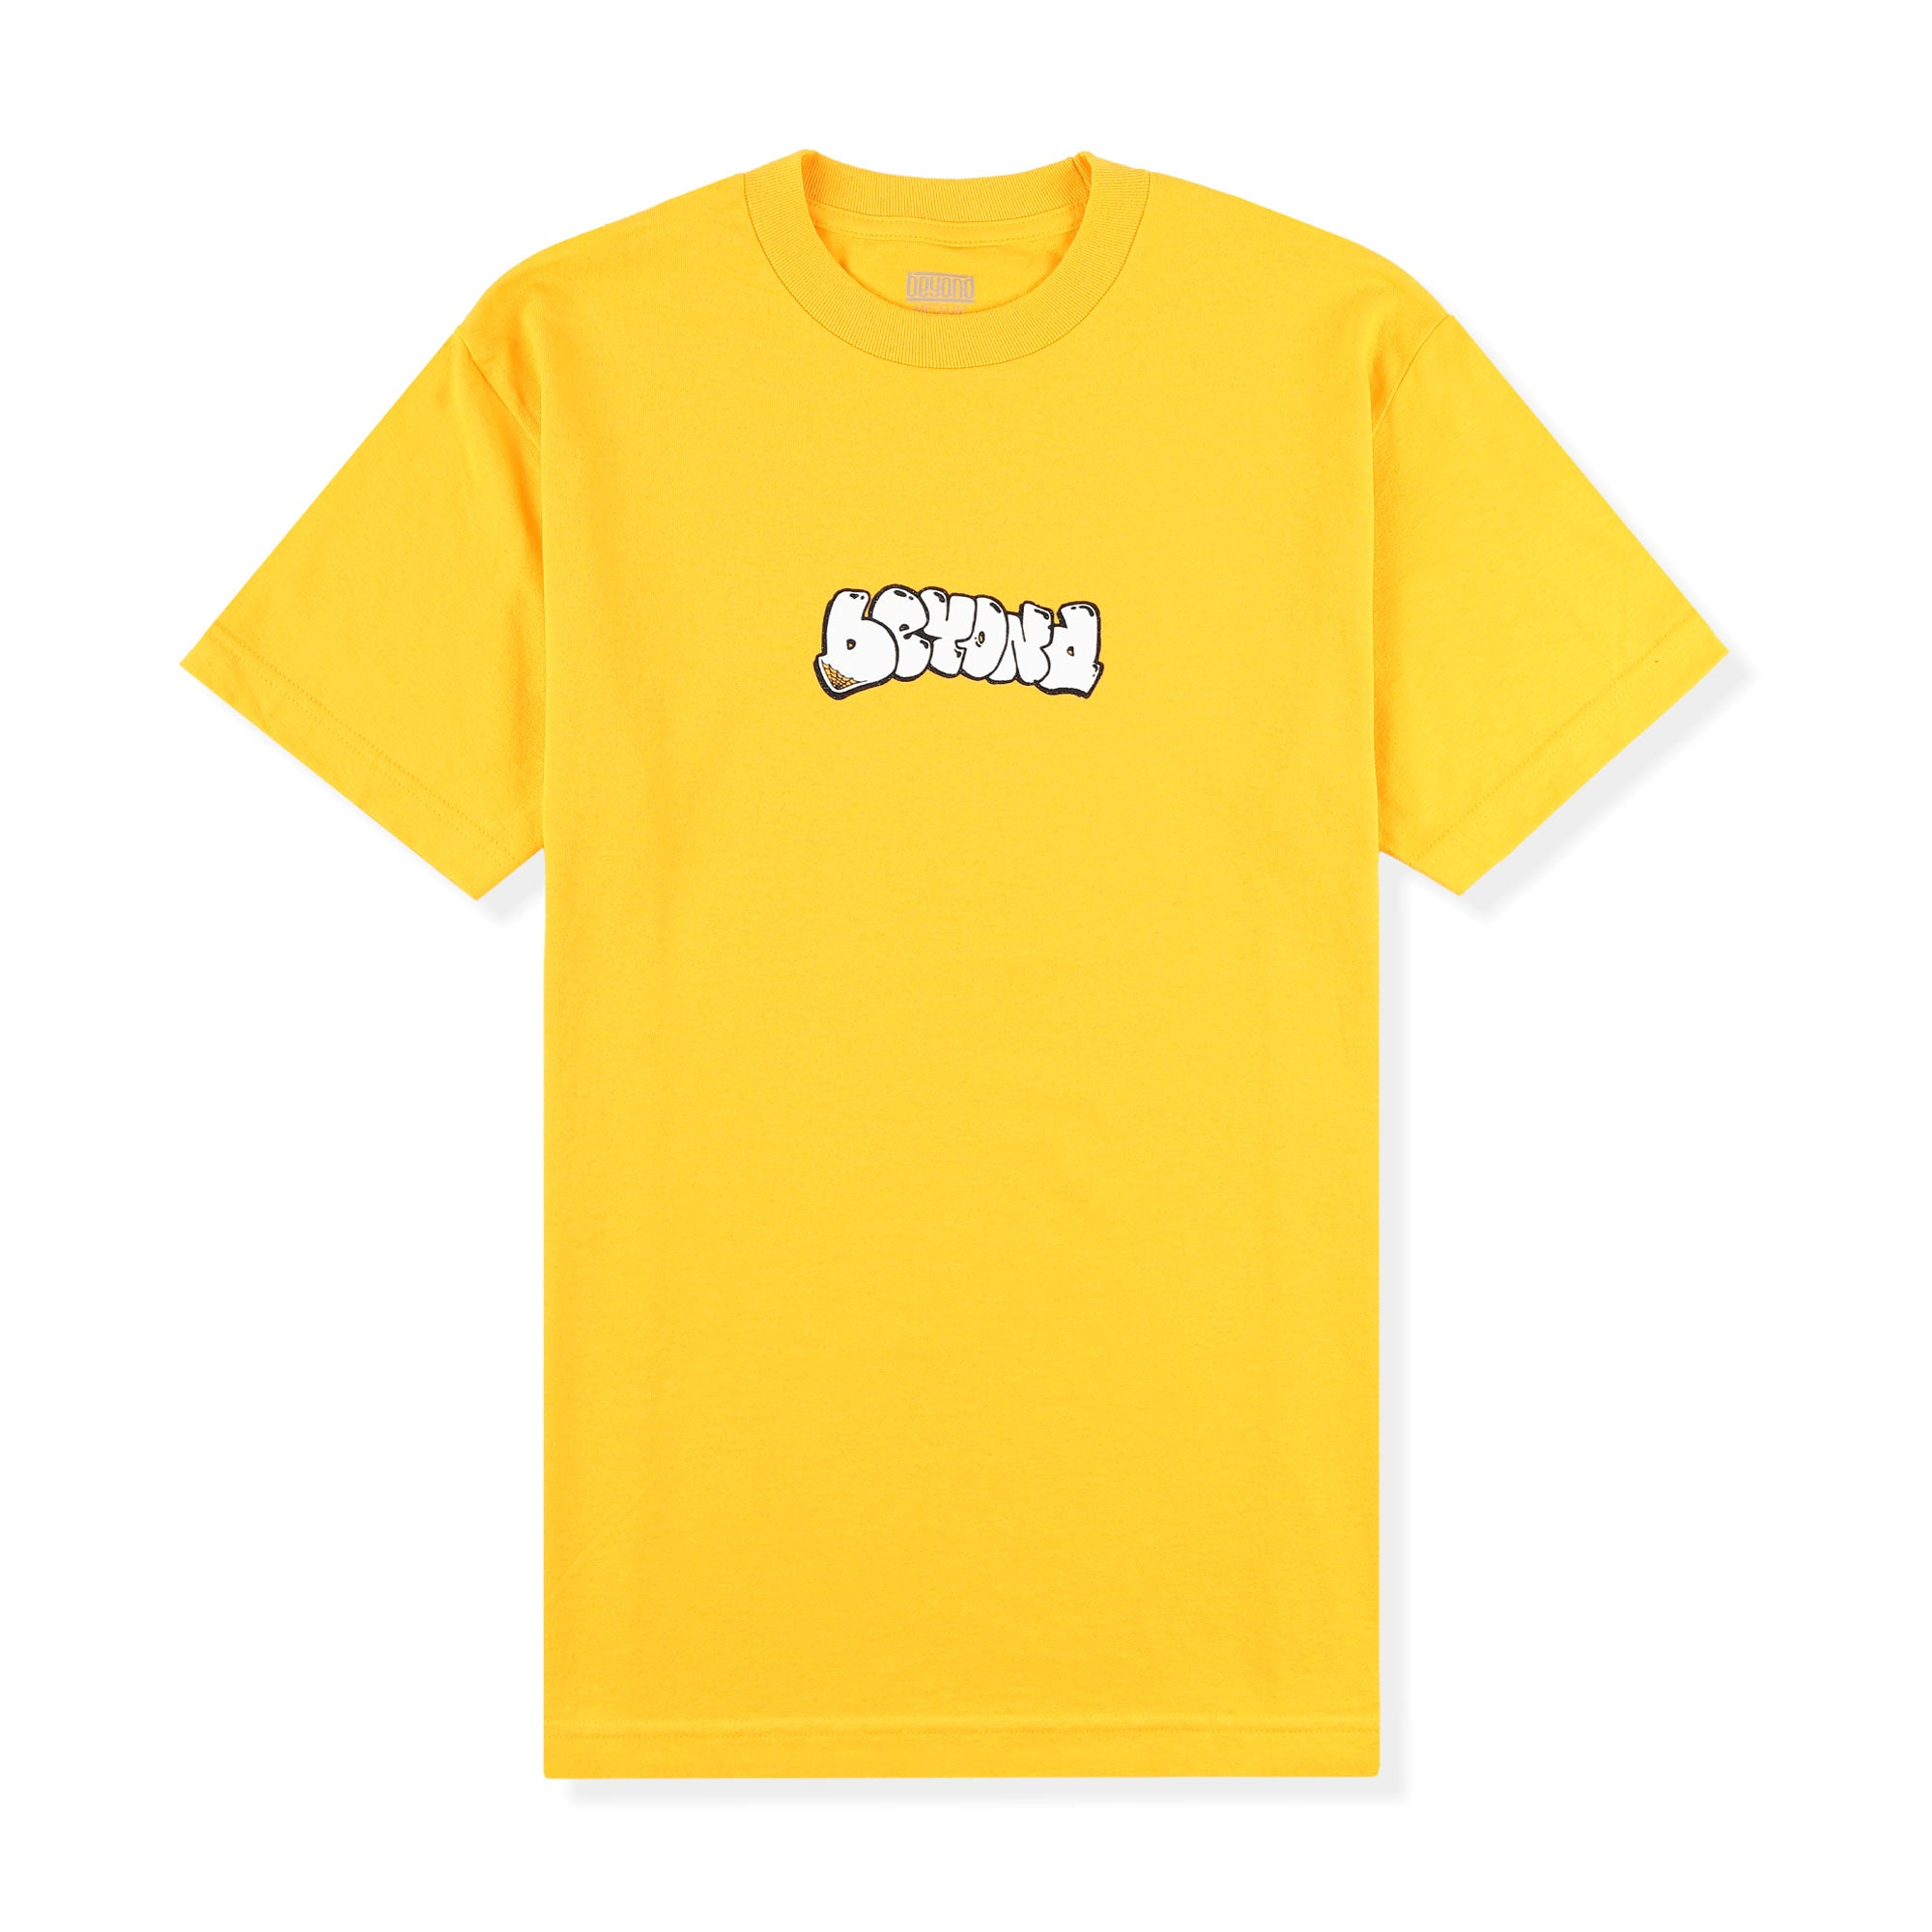 Beyond Throwy 2 Tee Product Photo #1